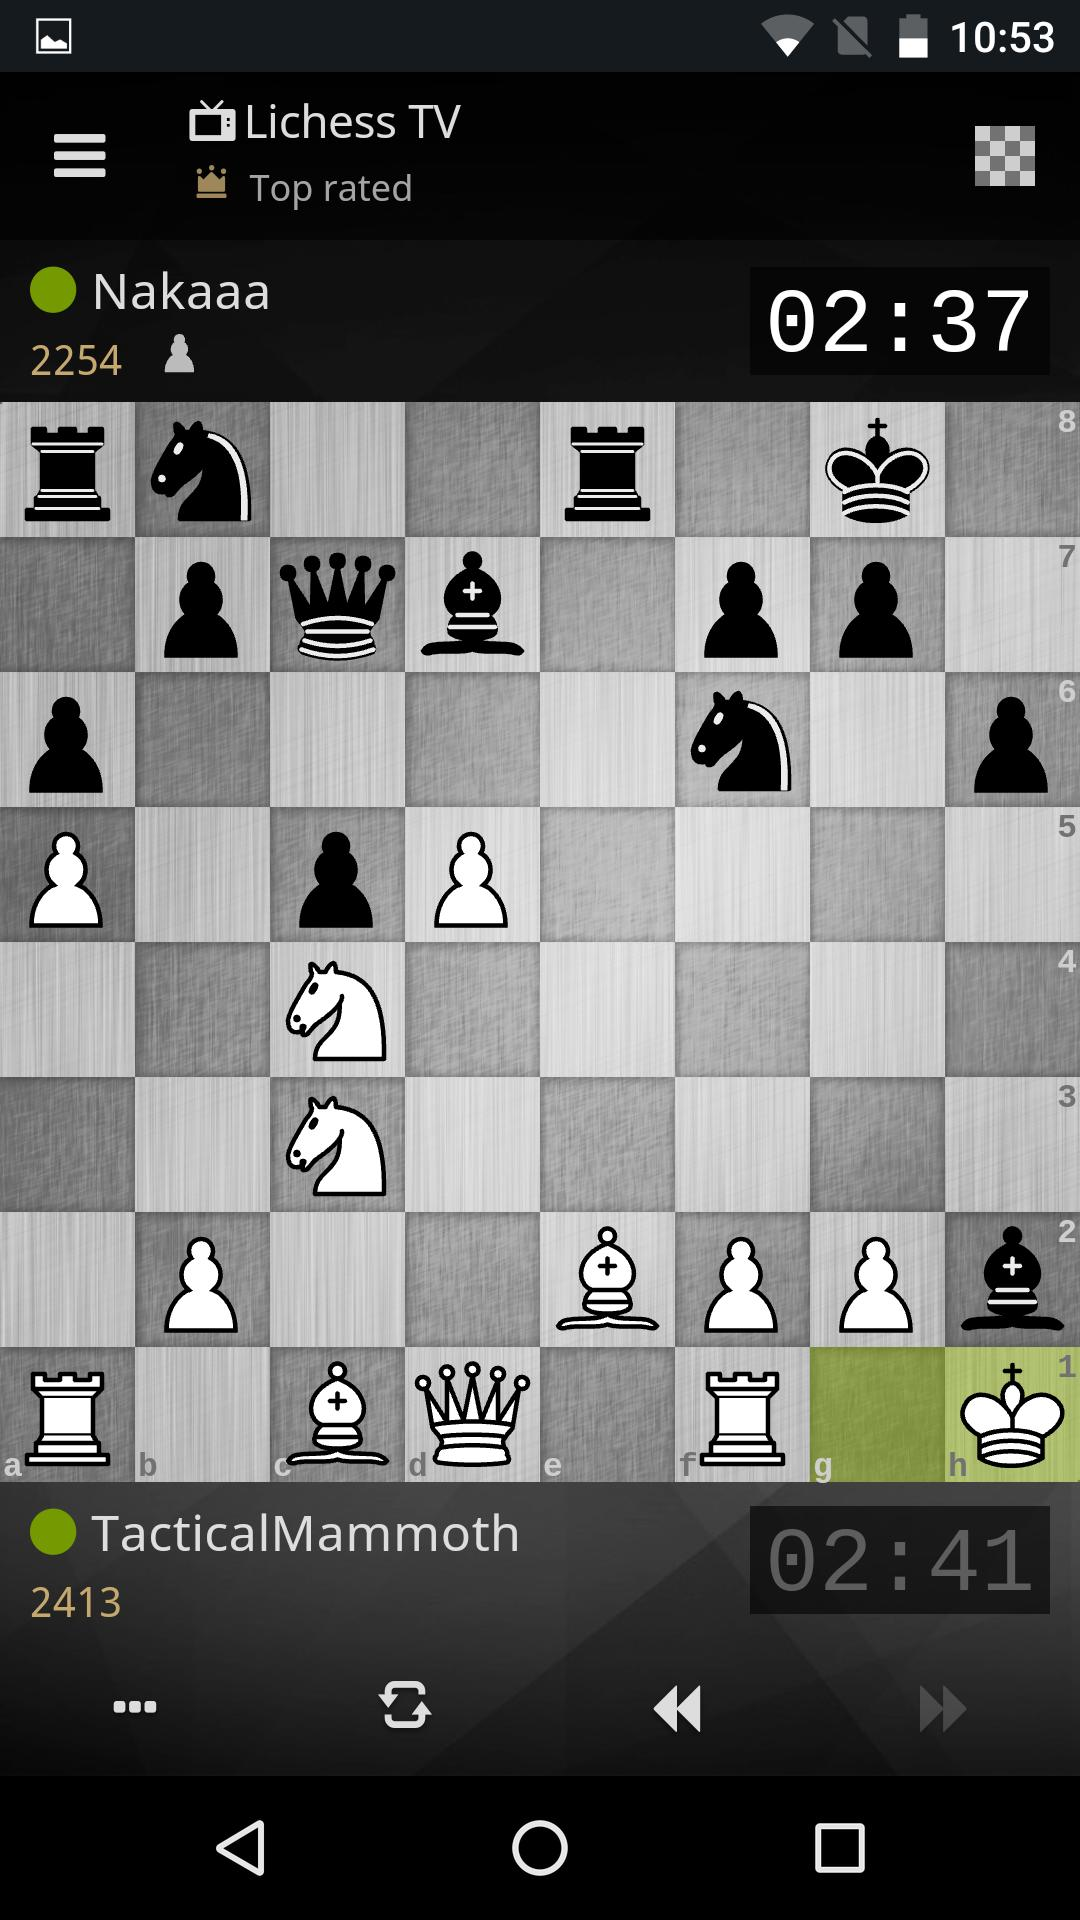 lichess for Android - APK Download